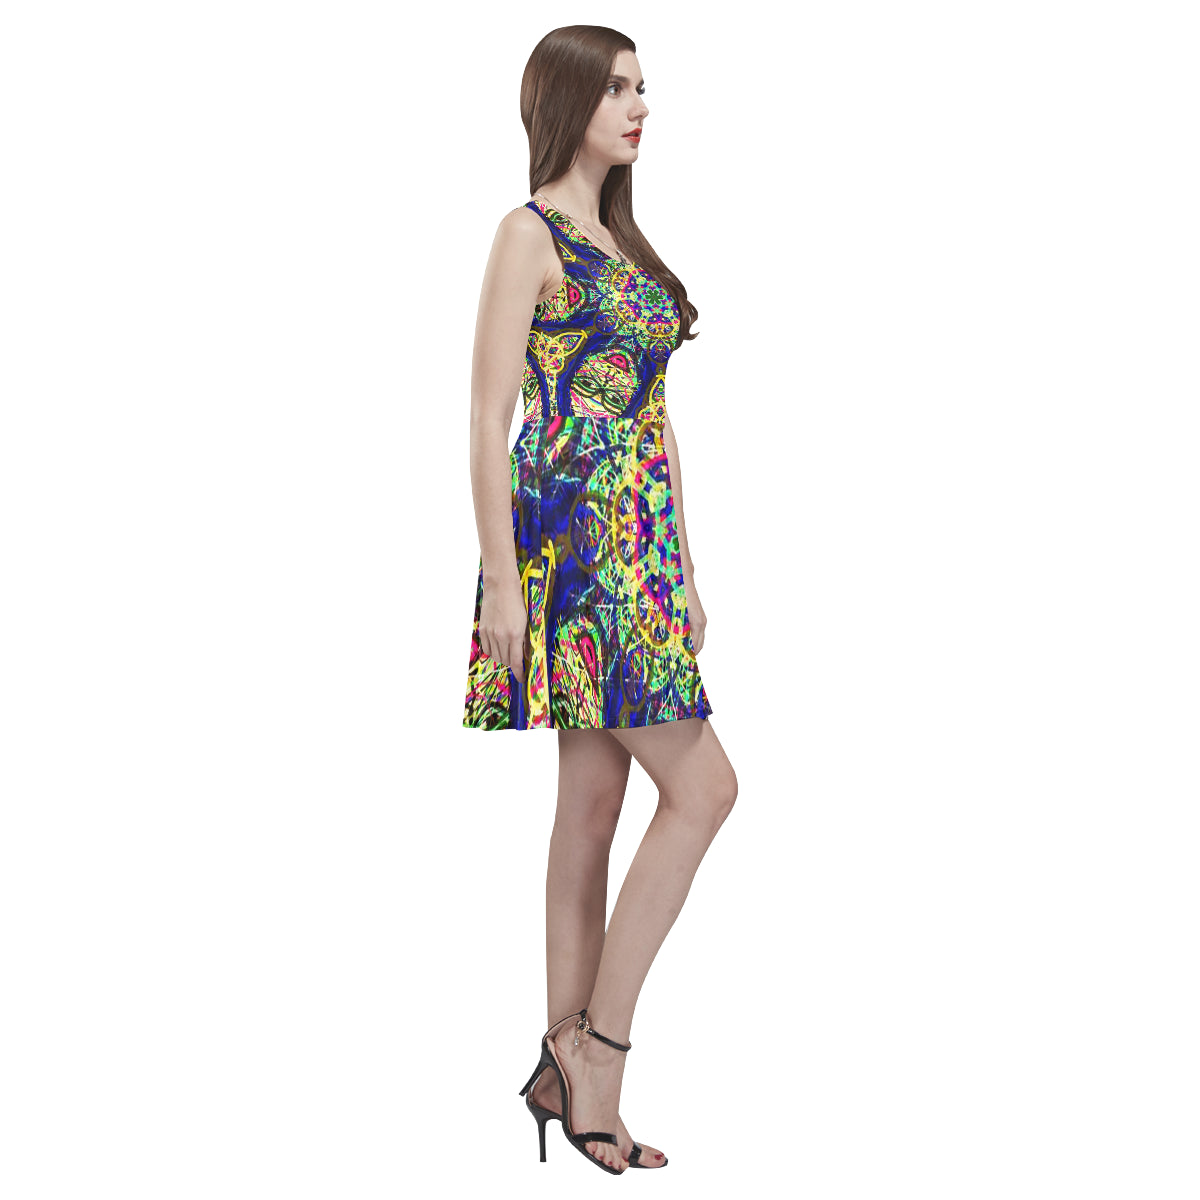 Thleudron Night Thea Sleeveless Skater Dress(Model D19) - Thleudron